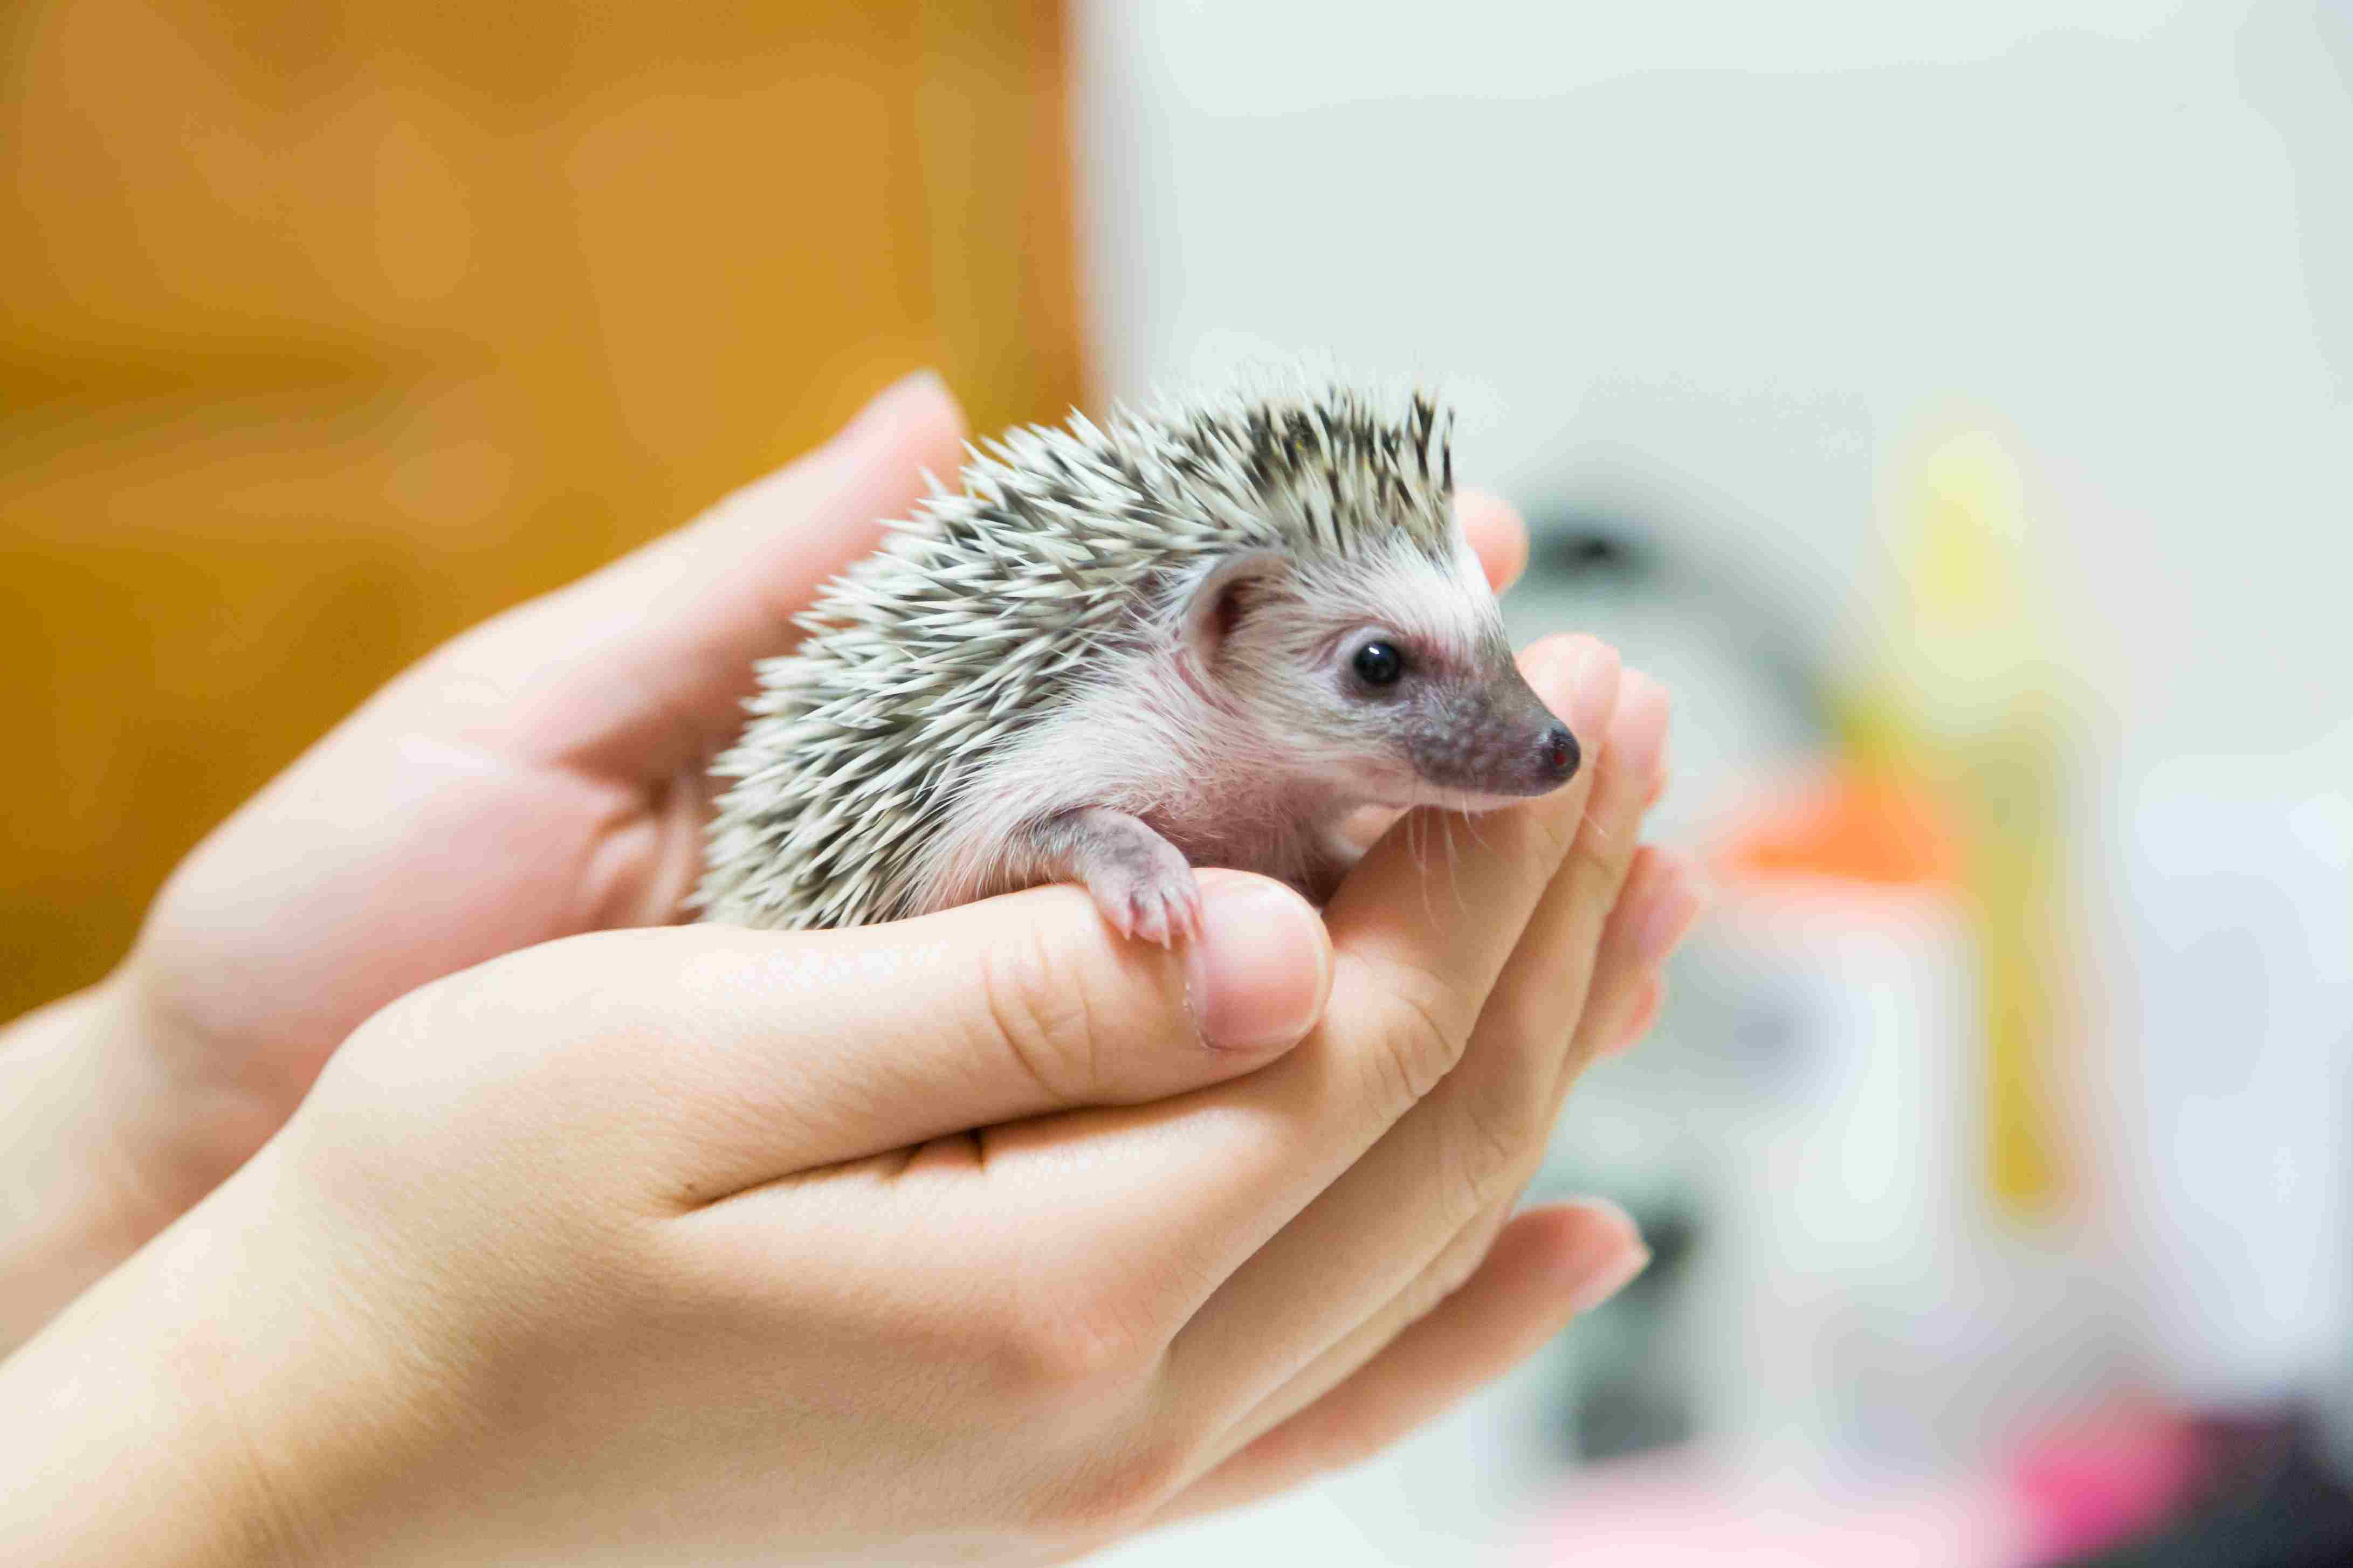 hedgehog in a person's hands